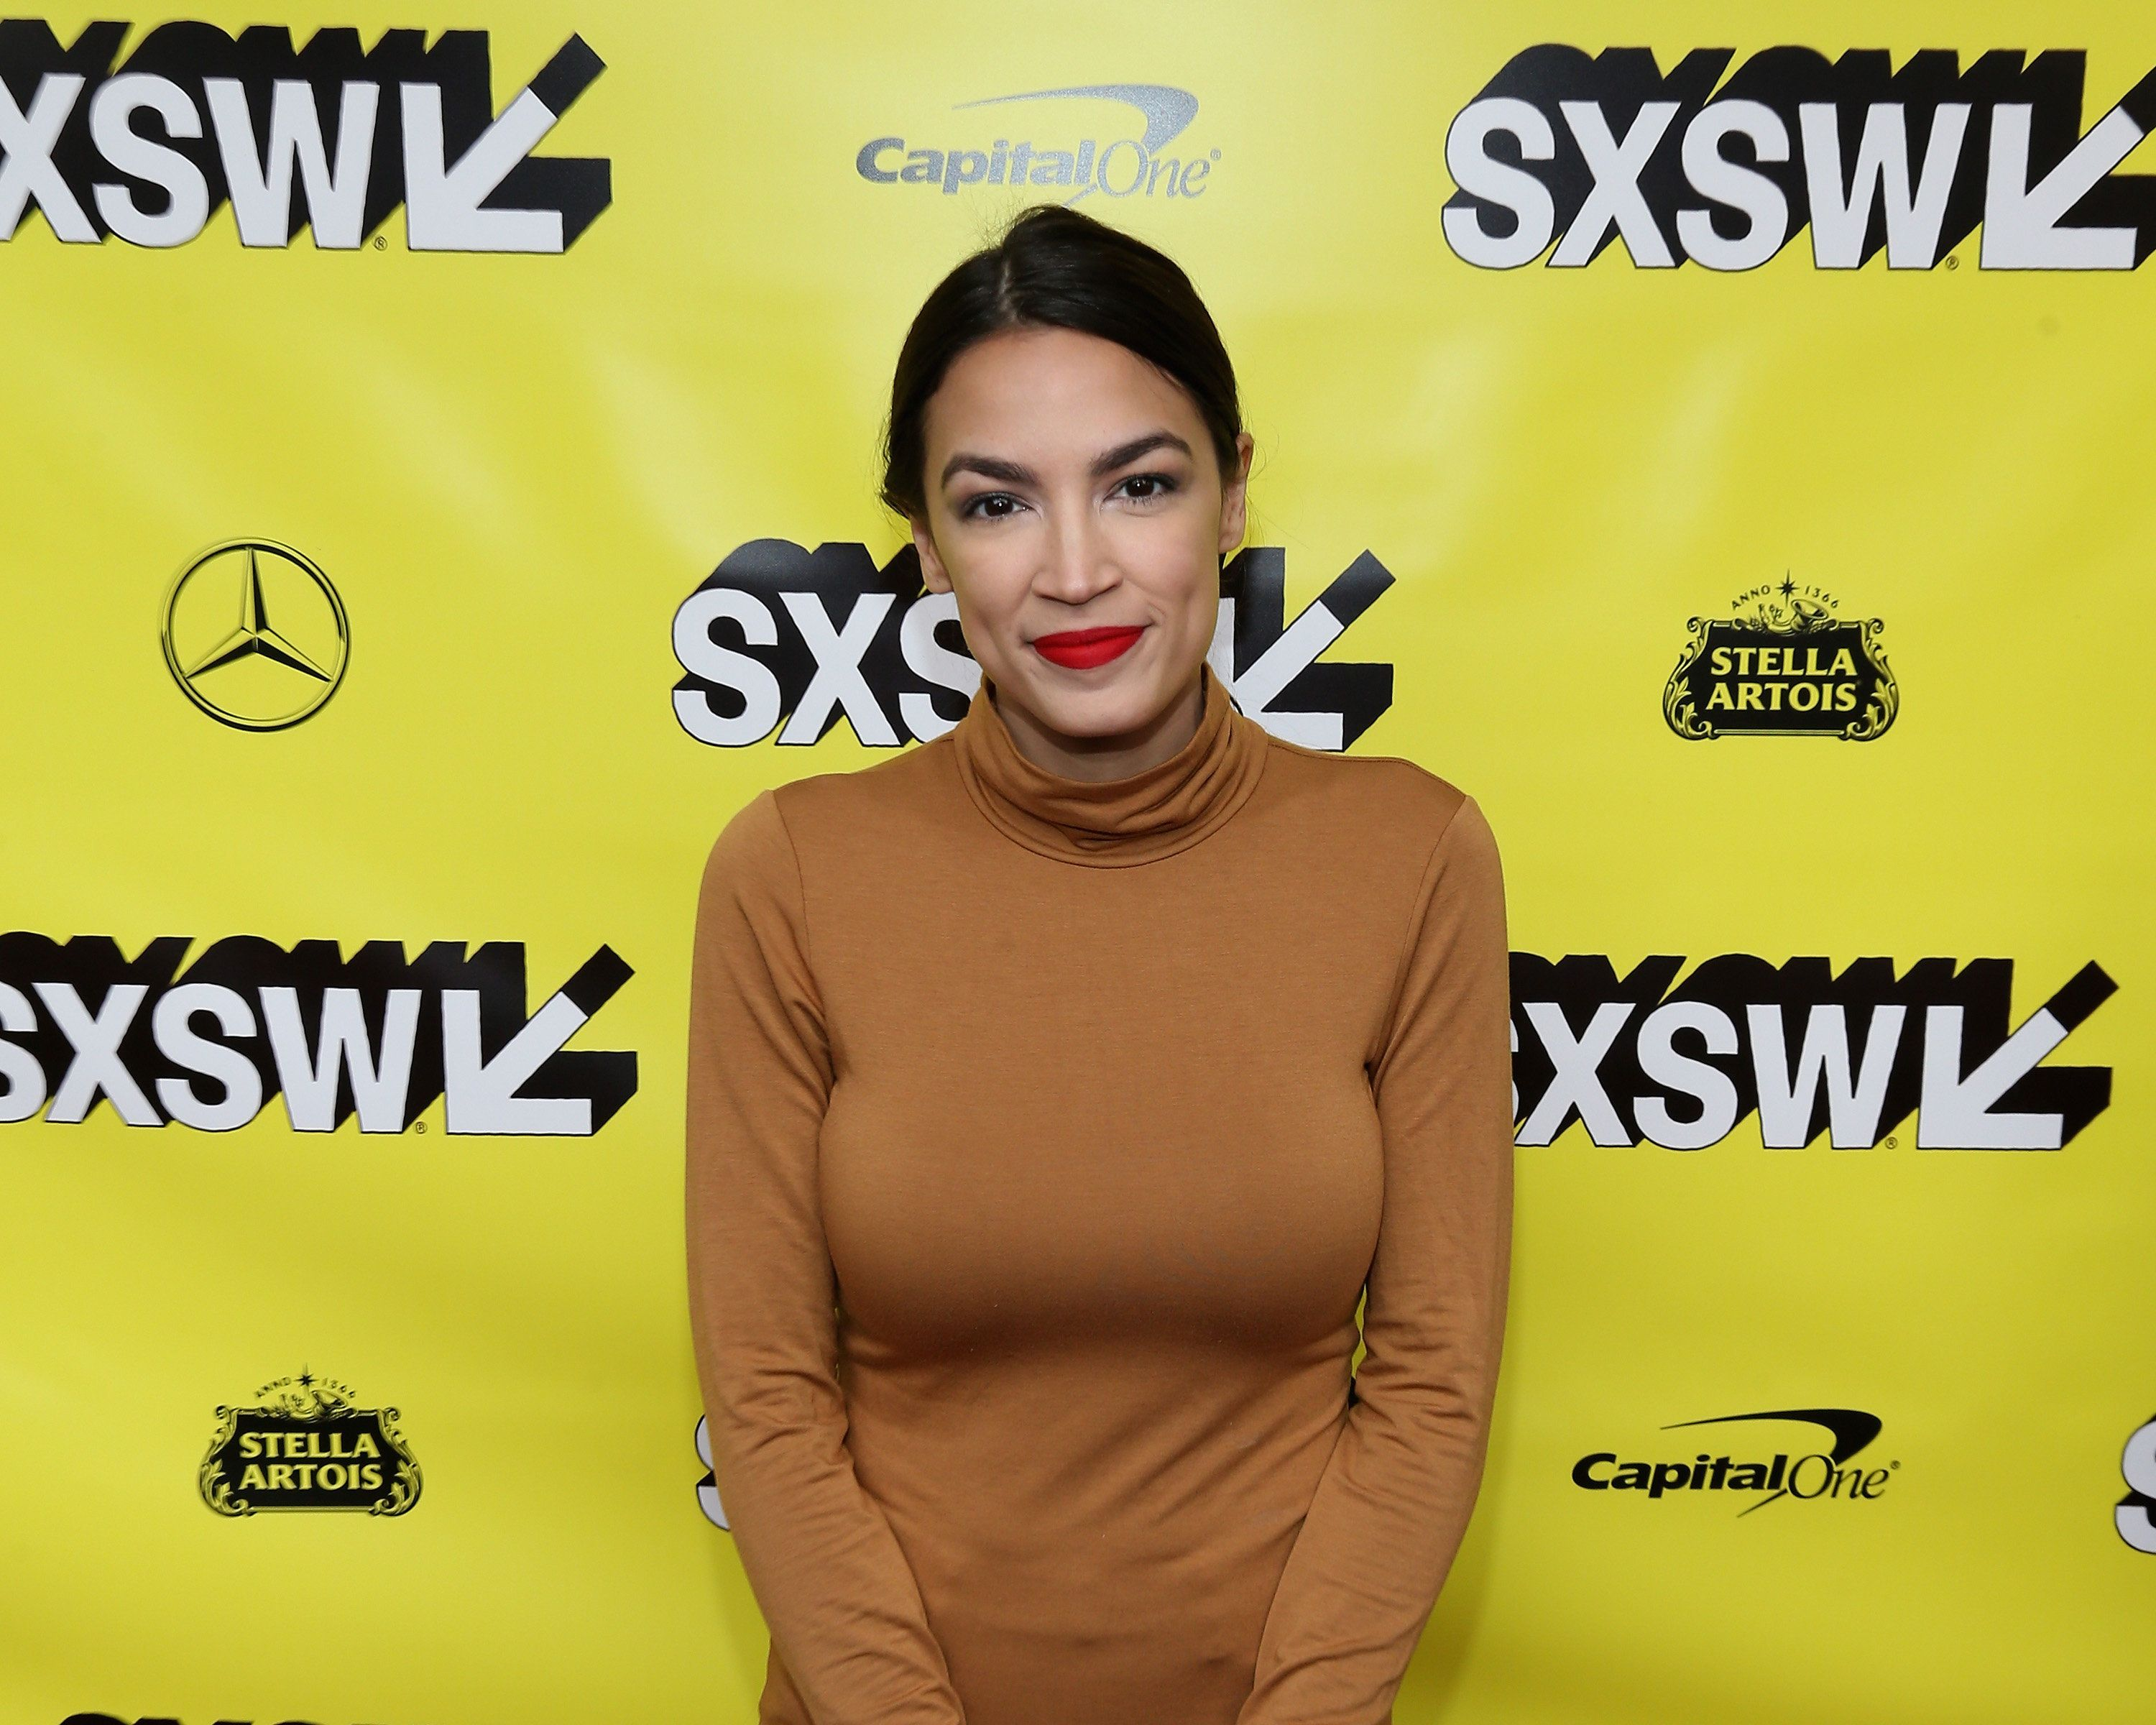 AUSTIN, TEXAS - MARCH 10:  Alexandria Ocasio-Cortez attends the 'Knock Down The House' Premiere during the 2019 SXSW Conference and Festival at the Paramount Theatre on March 10, 2019 in Austin, Texas.  (Photo by Gary Miller/FilmMagic)